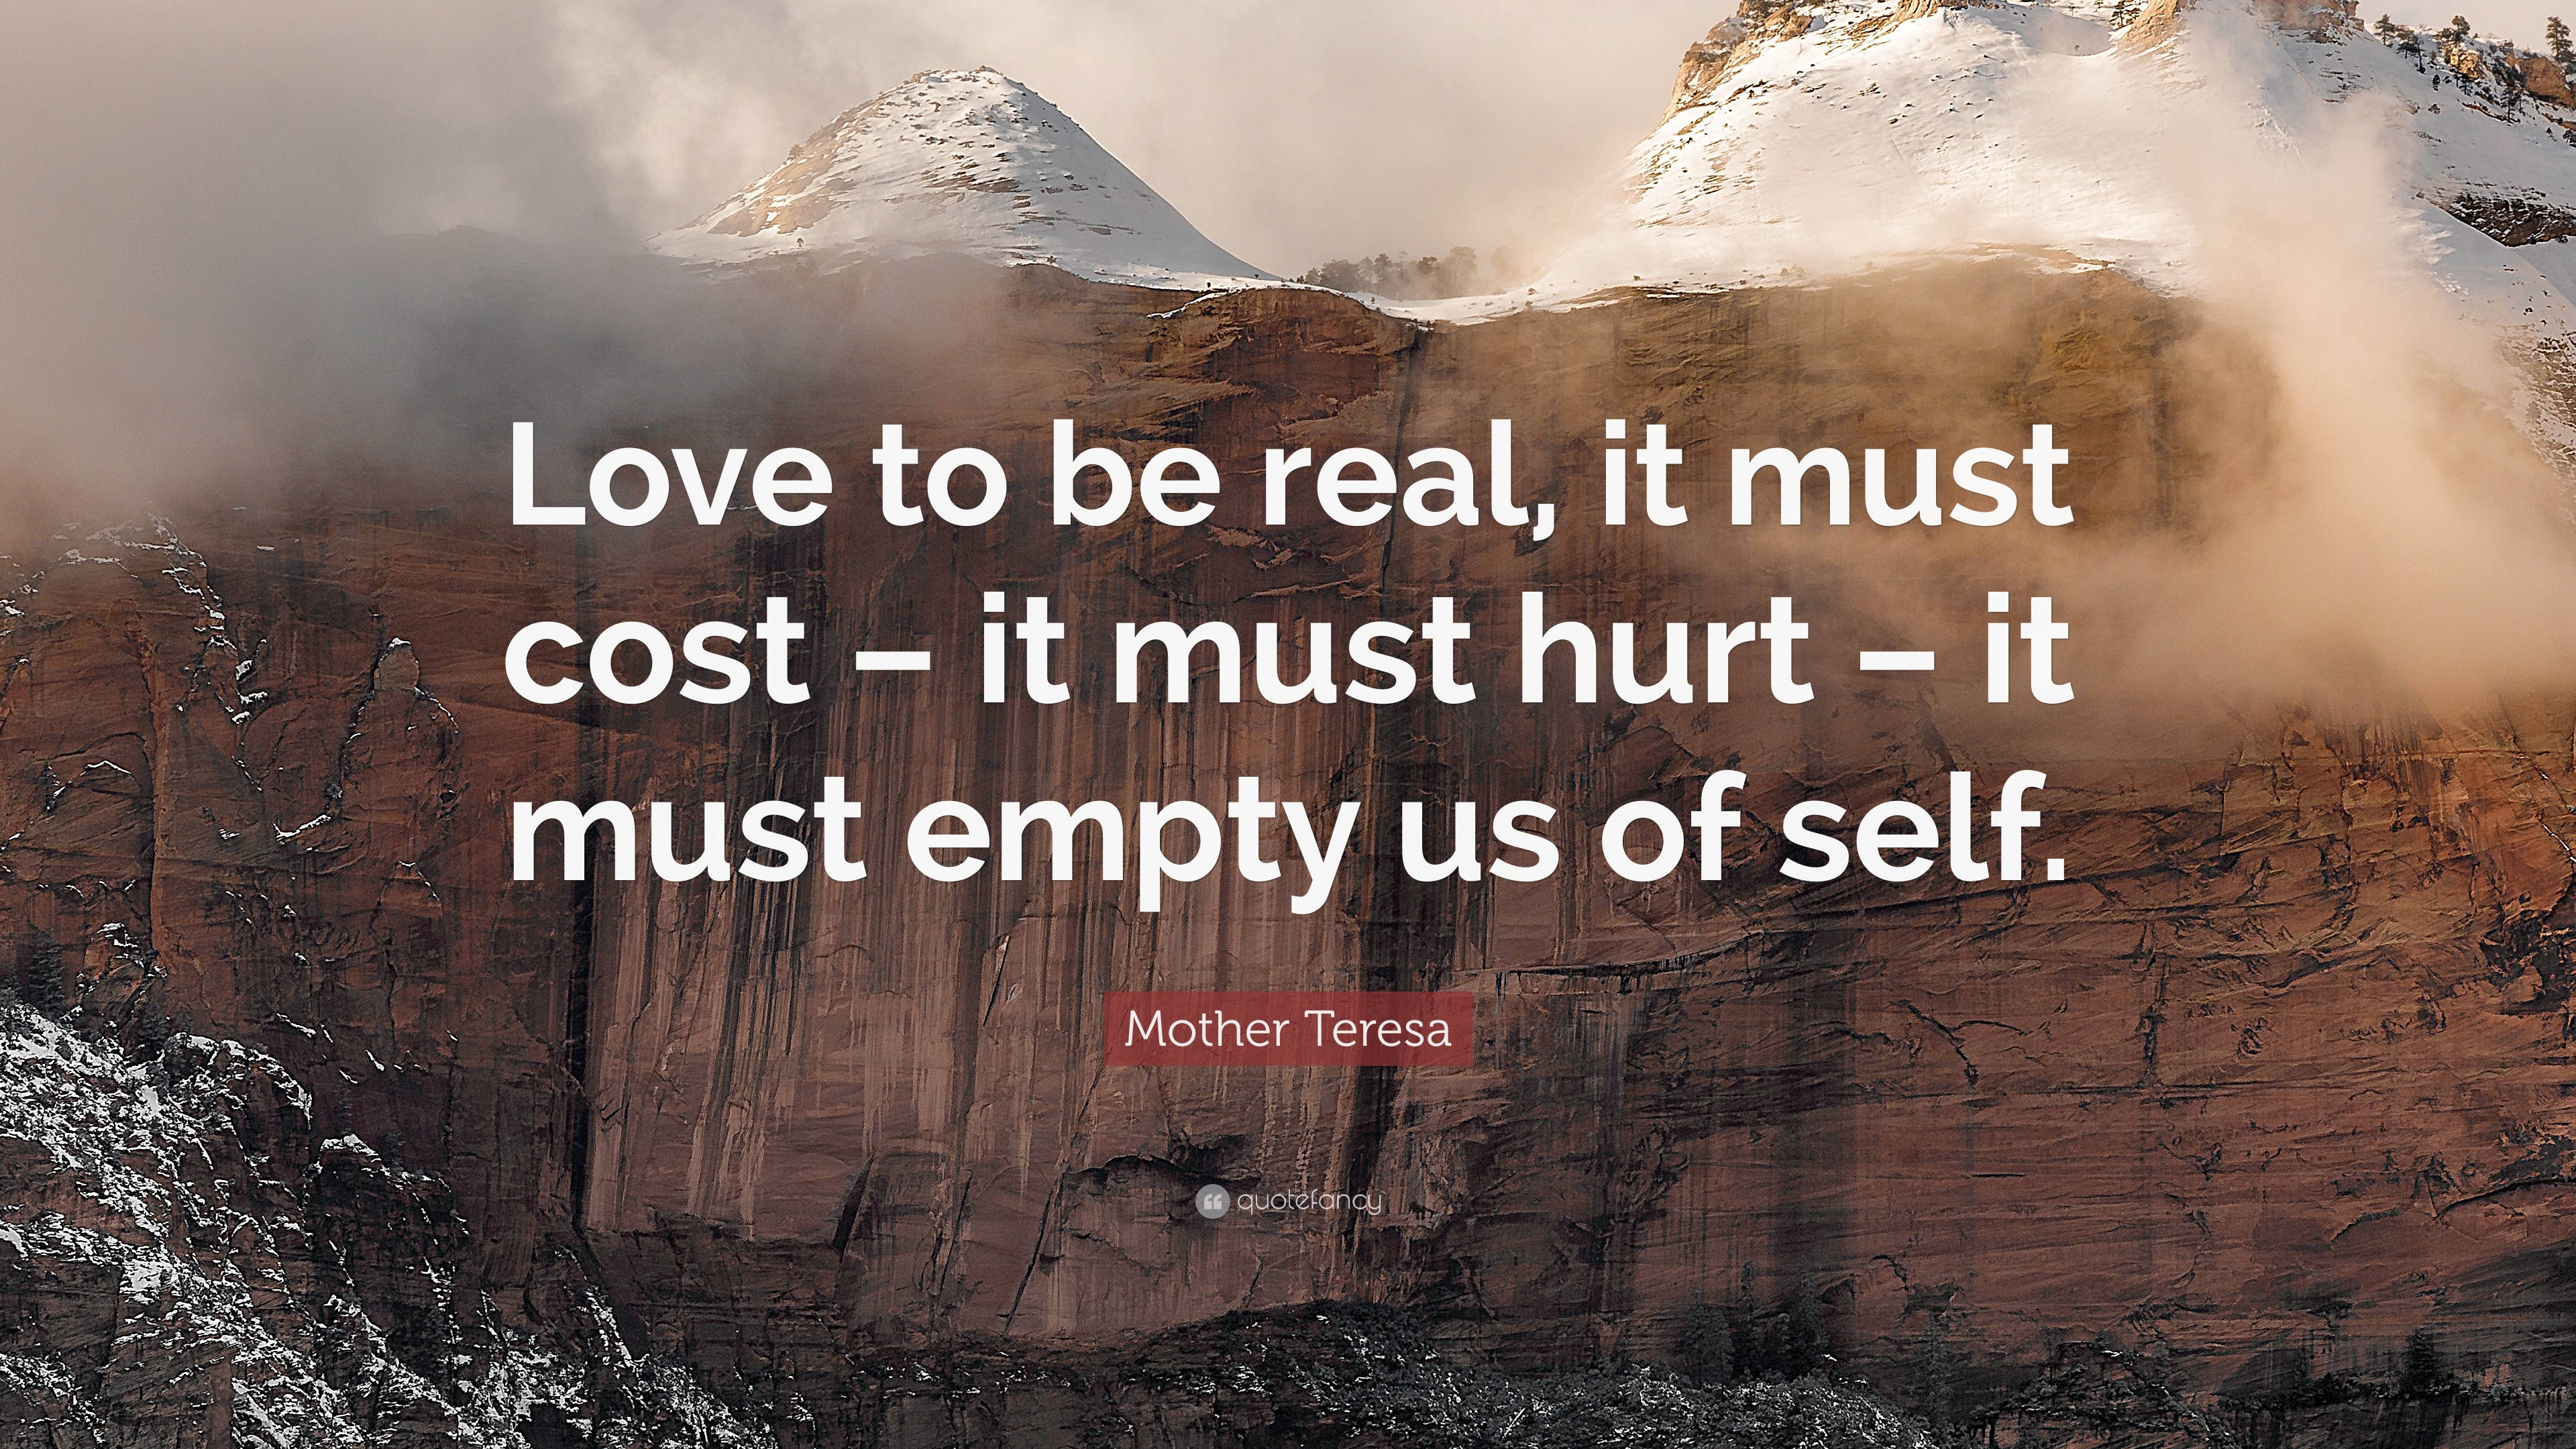 "Mother Teresa Quotes Love Mother Teresa Quote: ""Love to be real, it must cost – it must hurt  Mother Teresa Quotes Love"